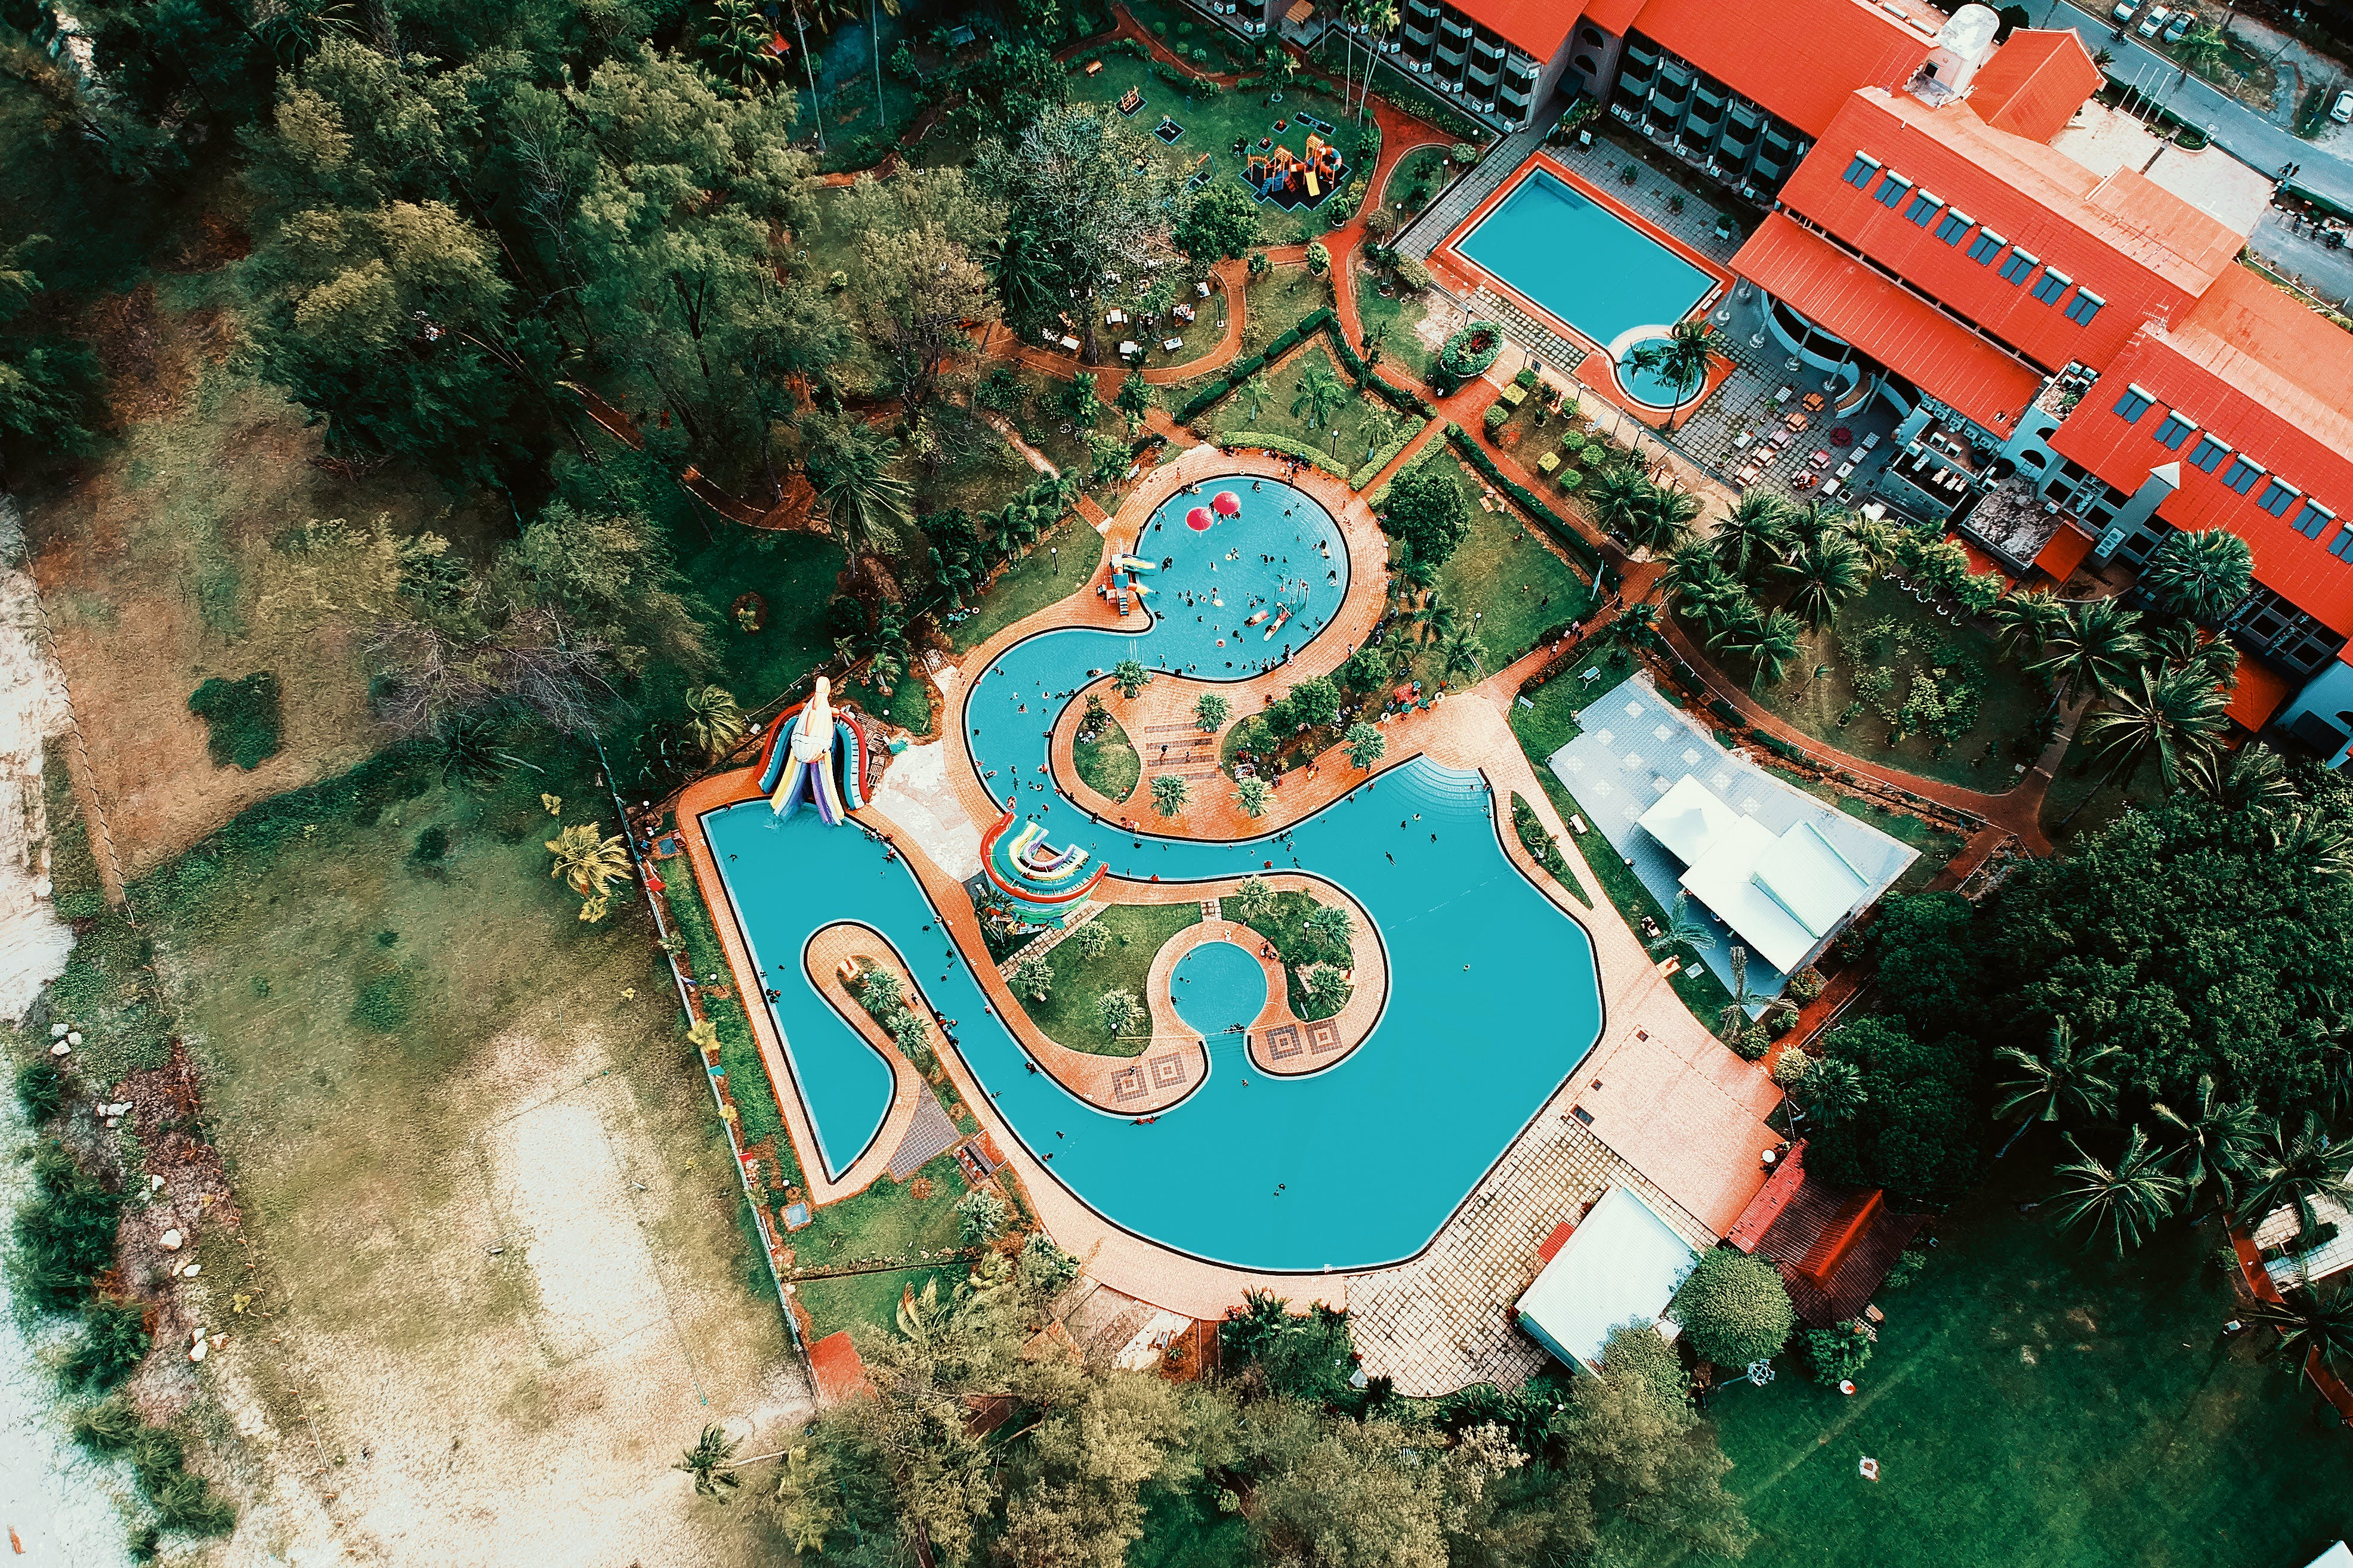 Birds Eye View of Water Pool and Building